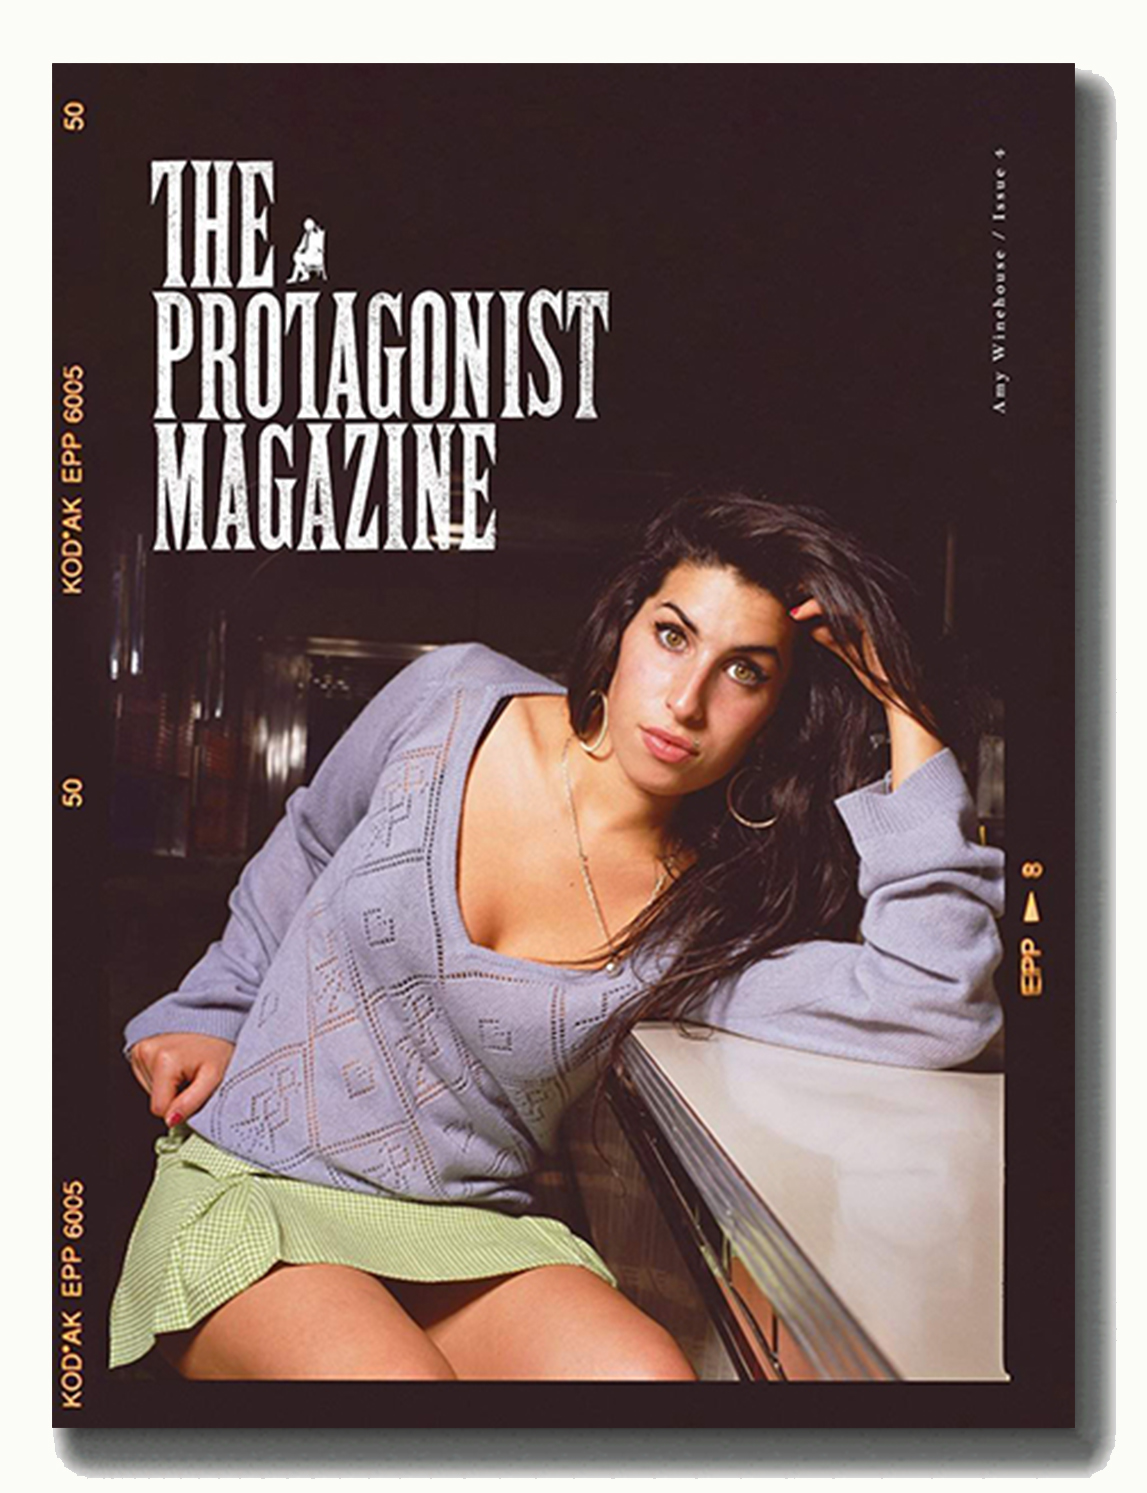 The Protagonist Magazine Issue 4 Amy Winehouse_book off white.jpg